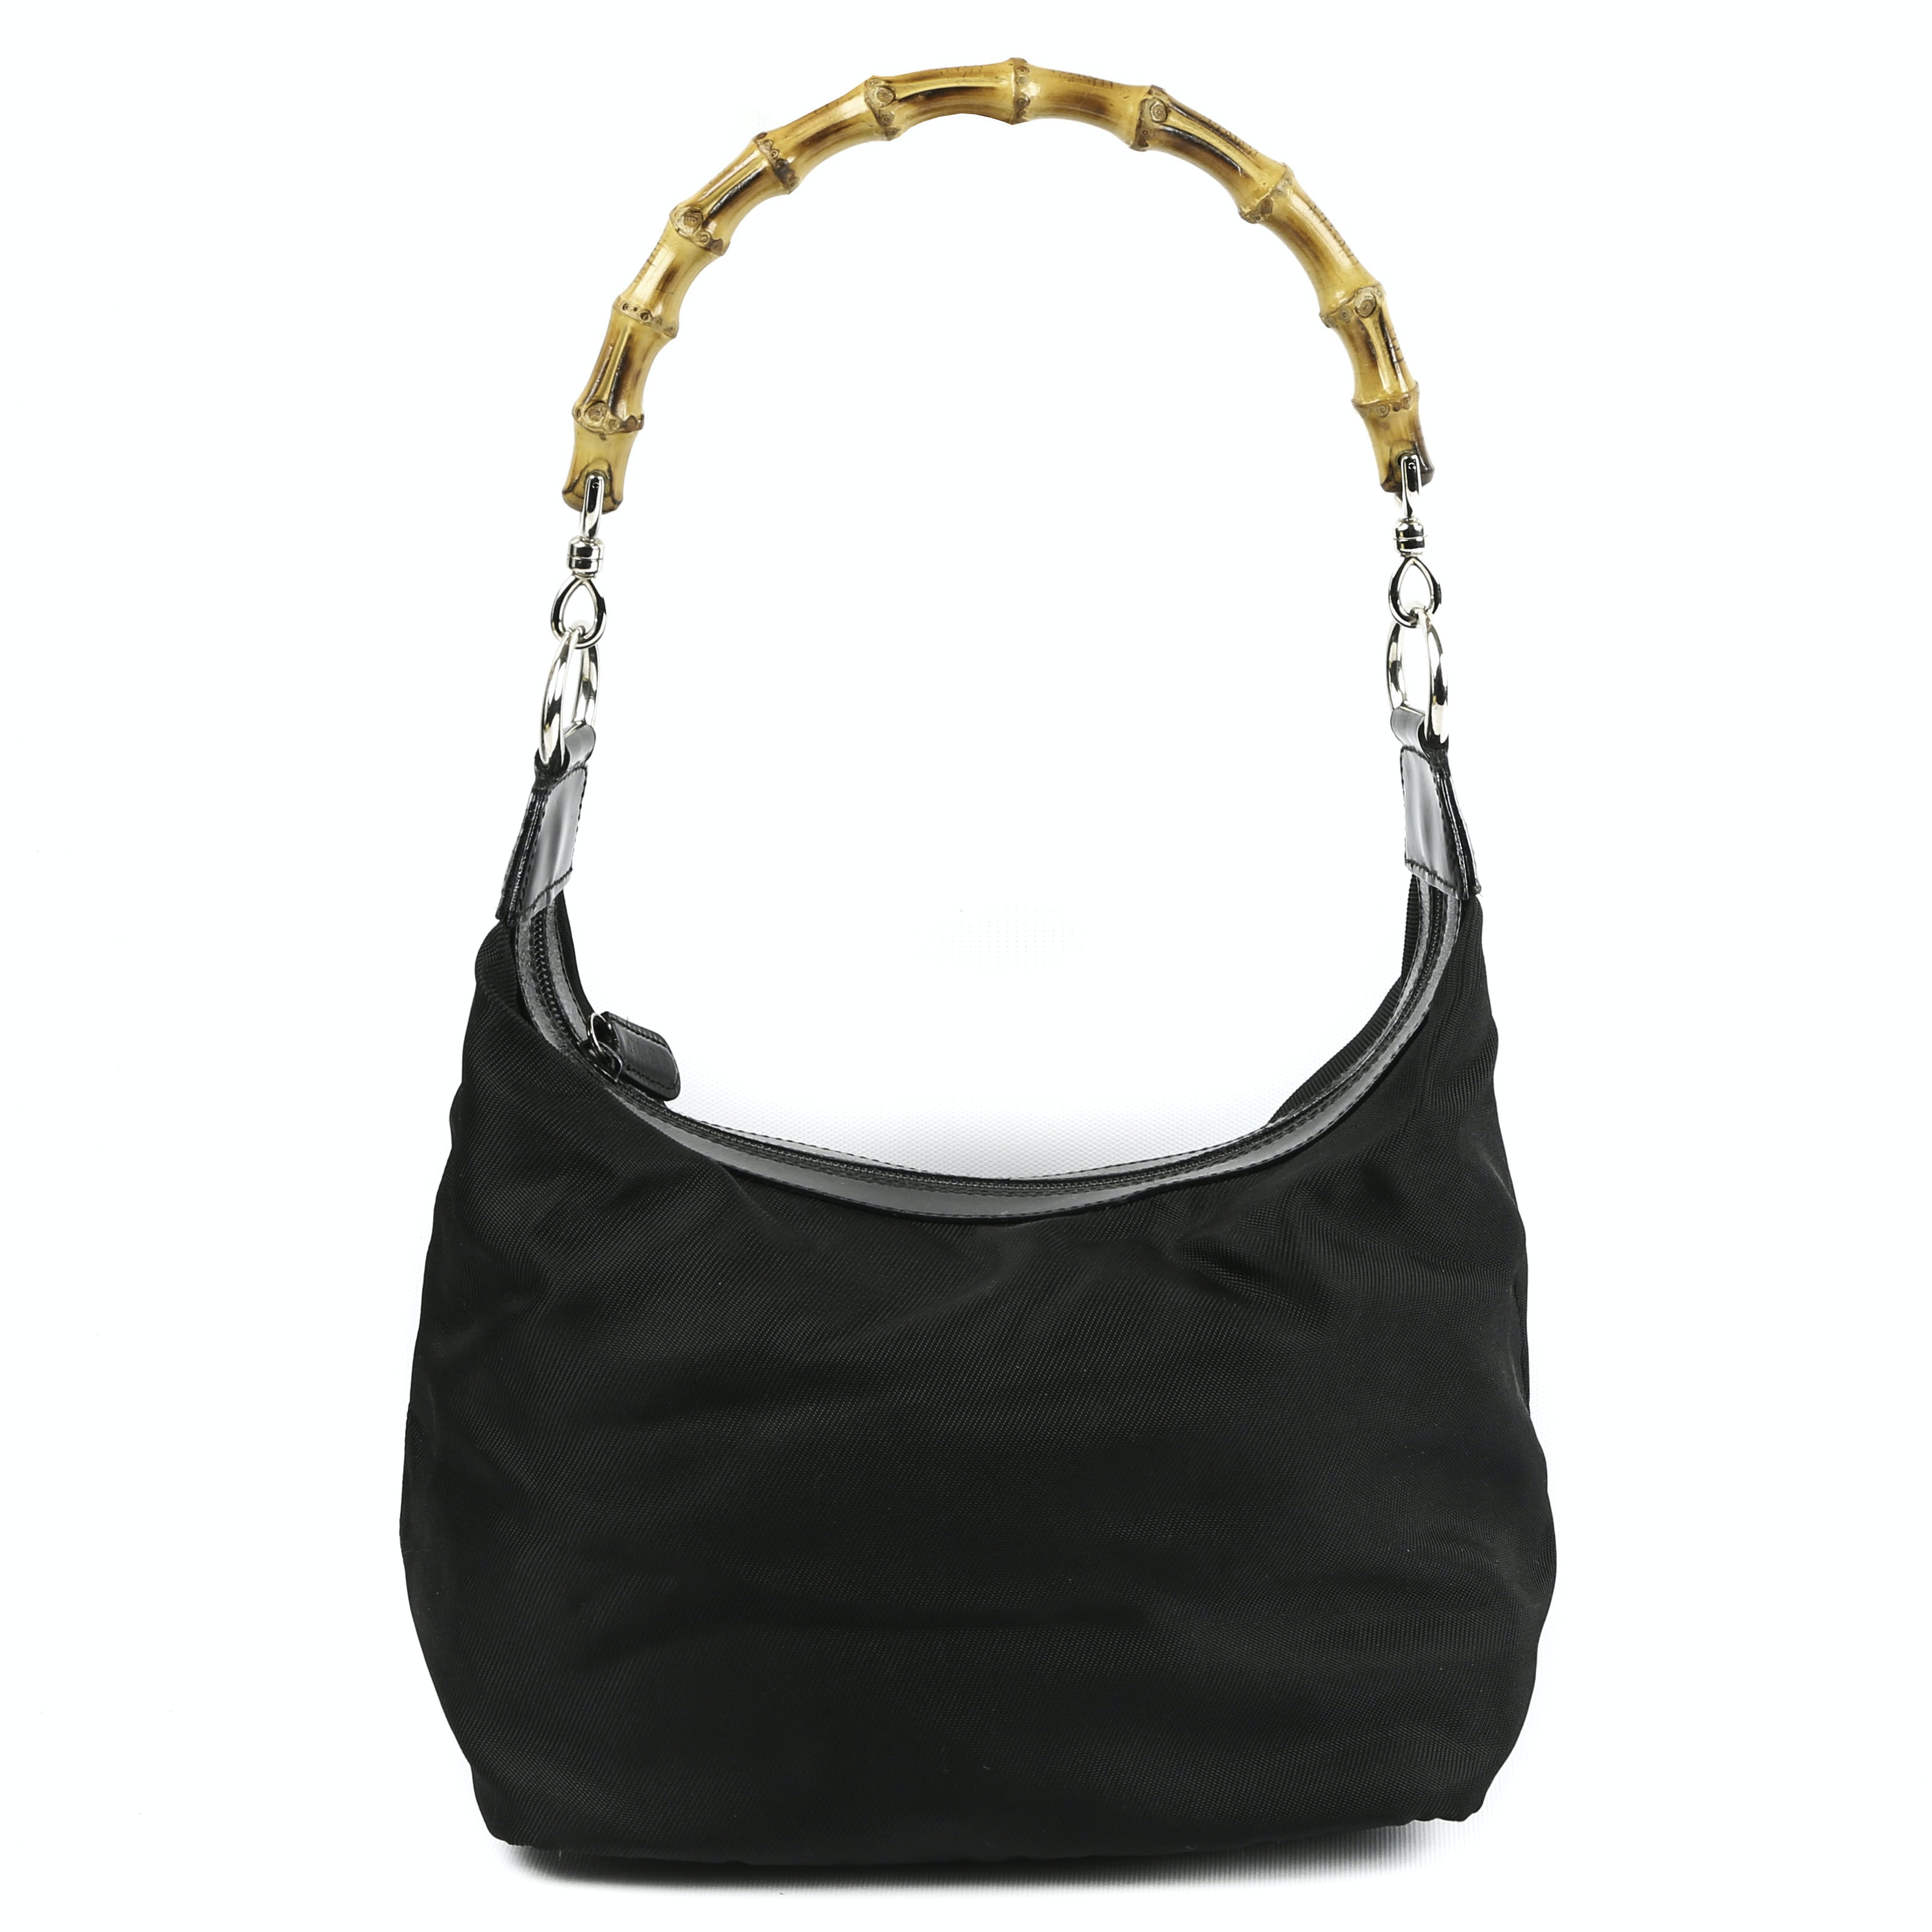 Gucci Black Nylon and Leather Bamboo Handle Bag